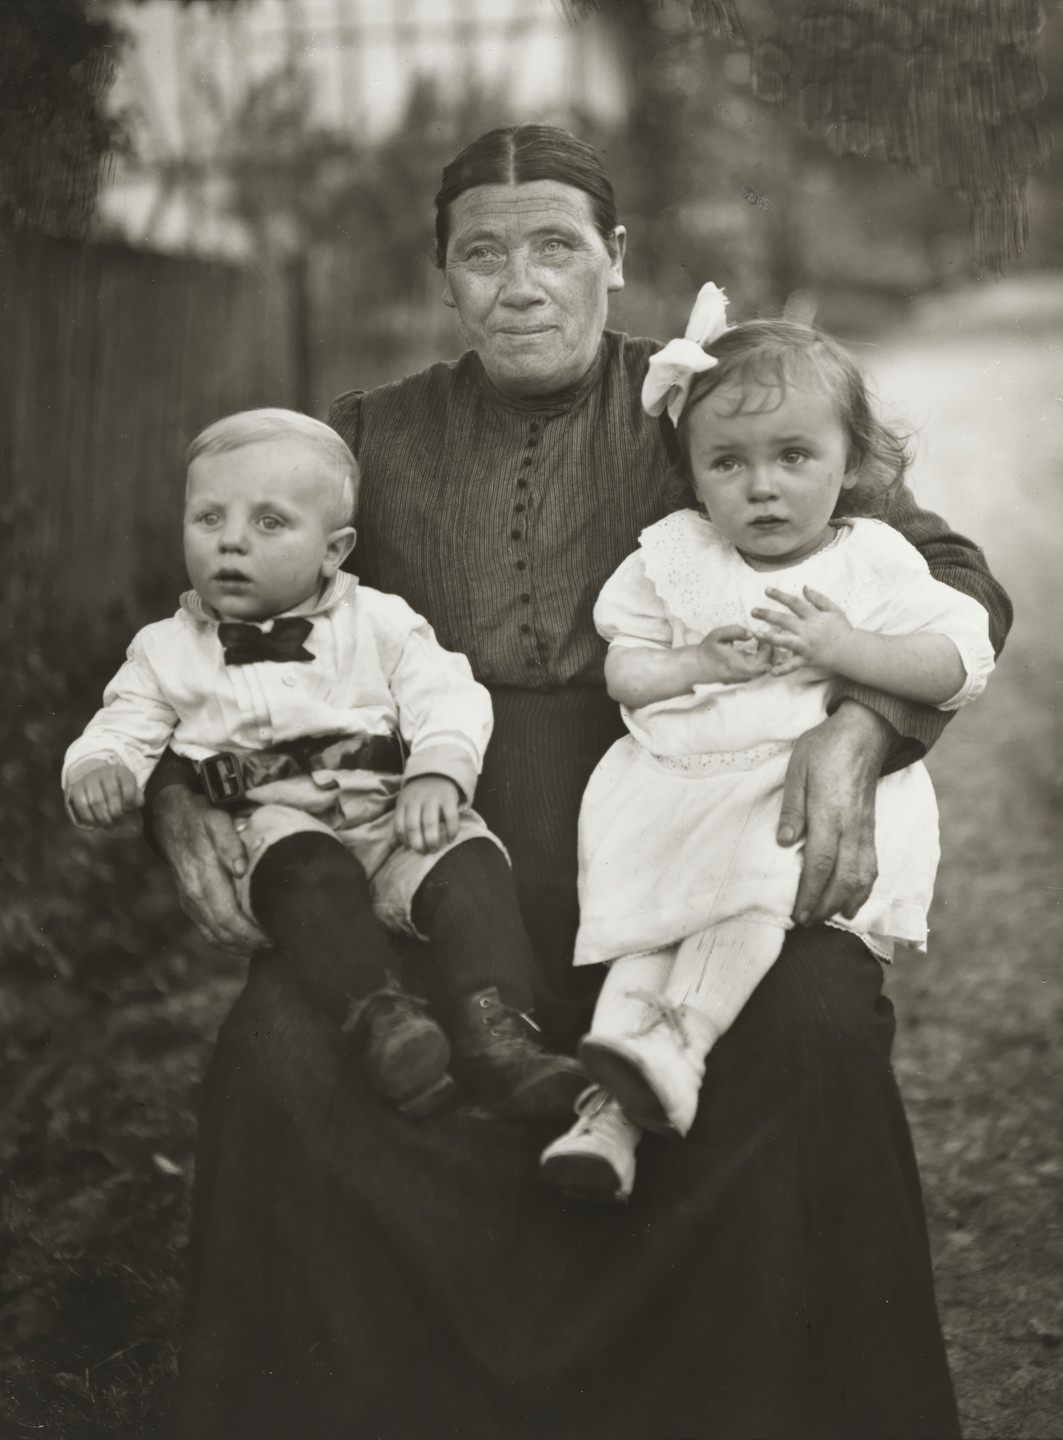 August Sander. Grandmother and Grandchildren. 1920-25